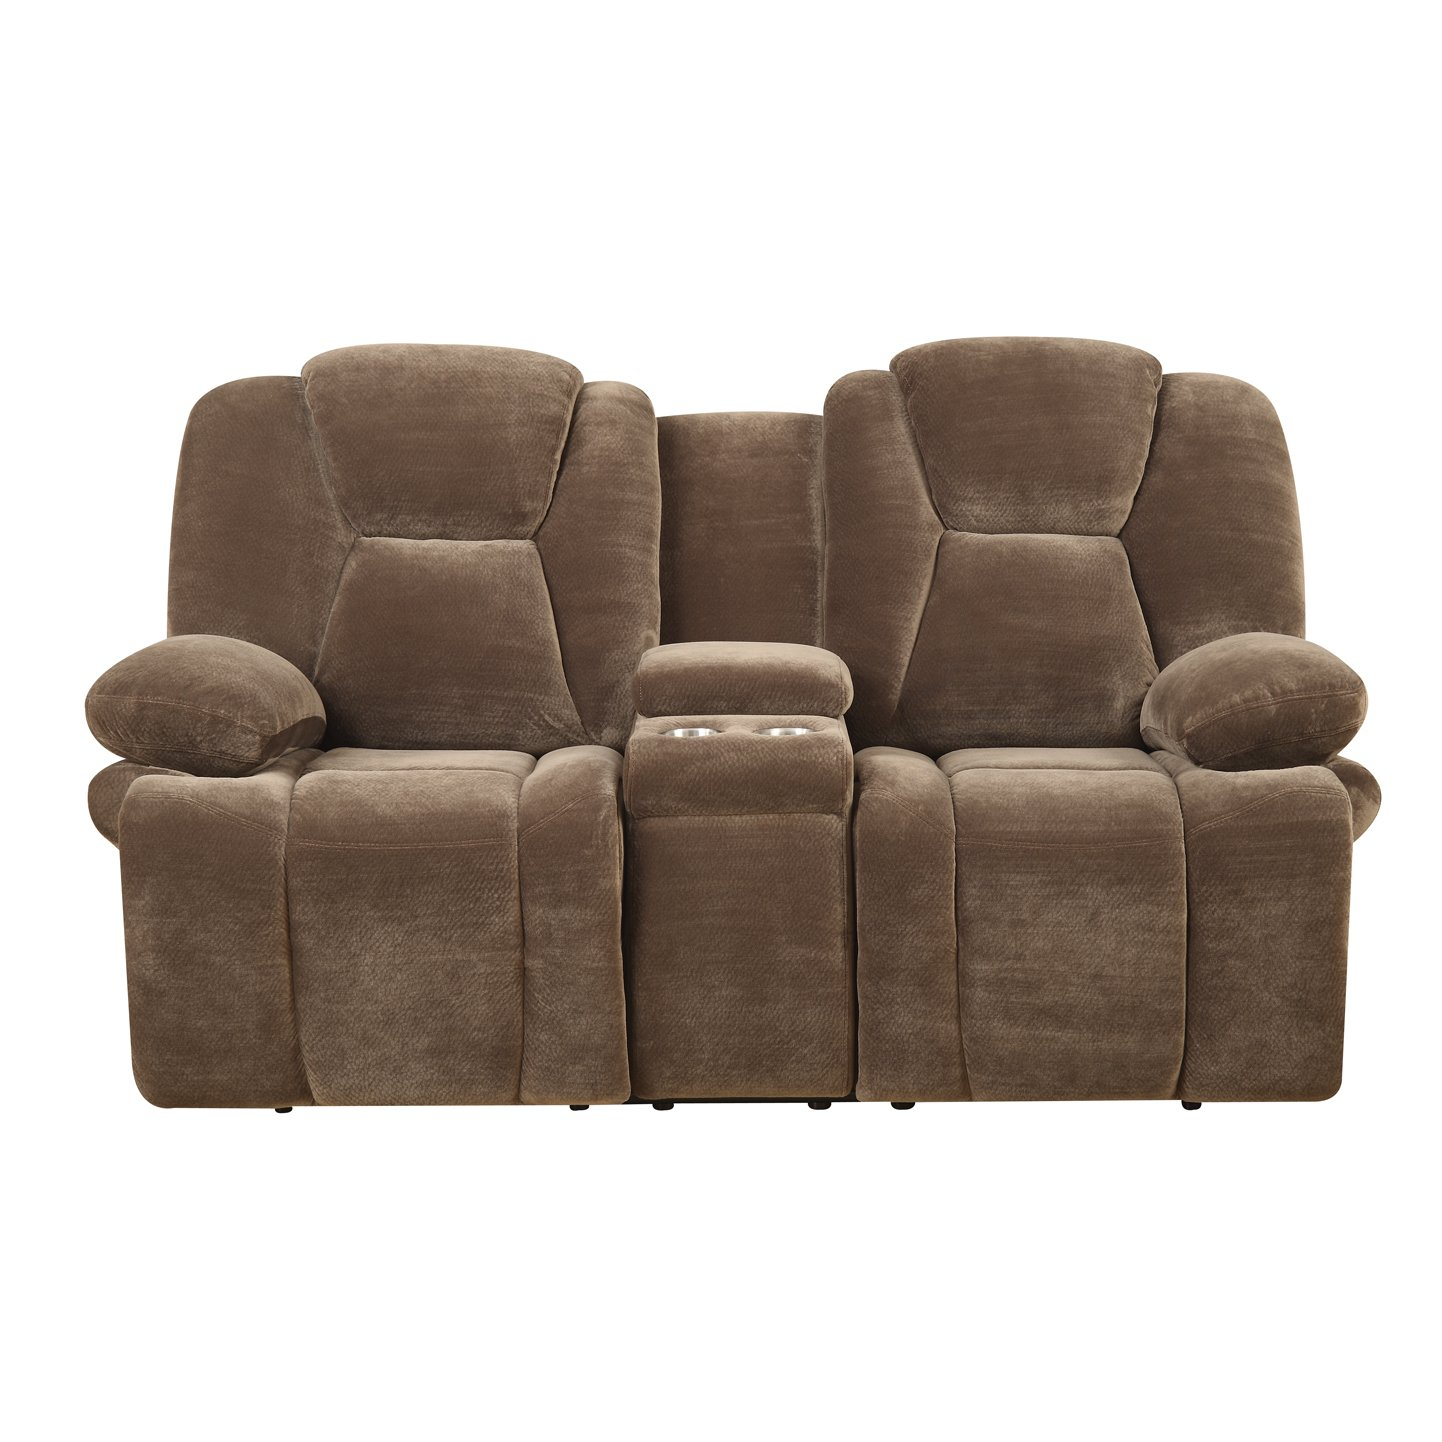 Shop Emerald Caressa Brown Dual Reclining Loveseat With Console Inside Caressa Leather Dark Grey Sofa Chairs (Image 25 of 25)